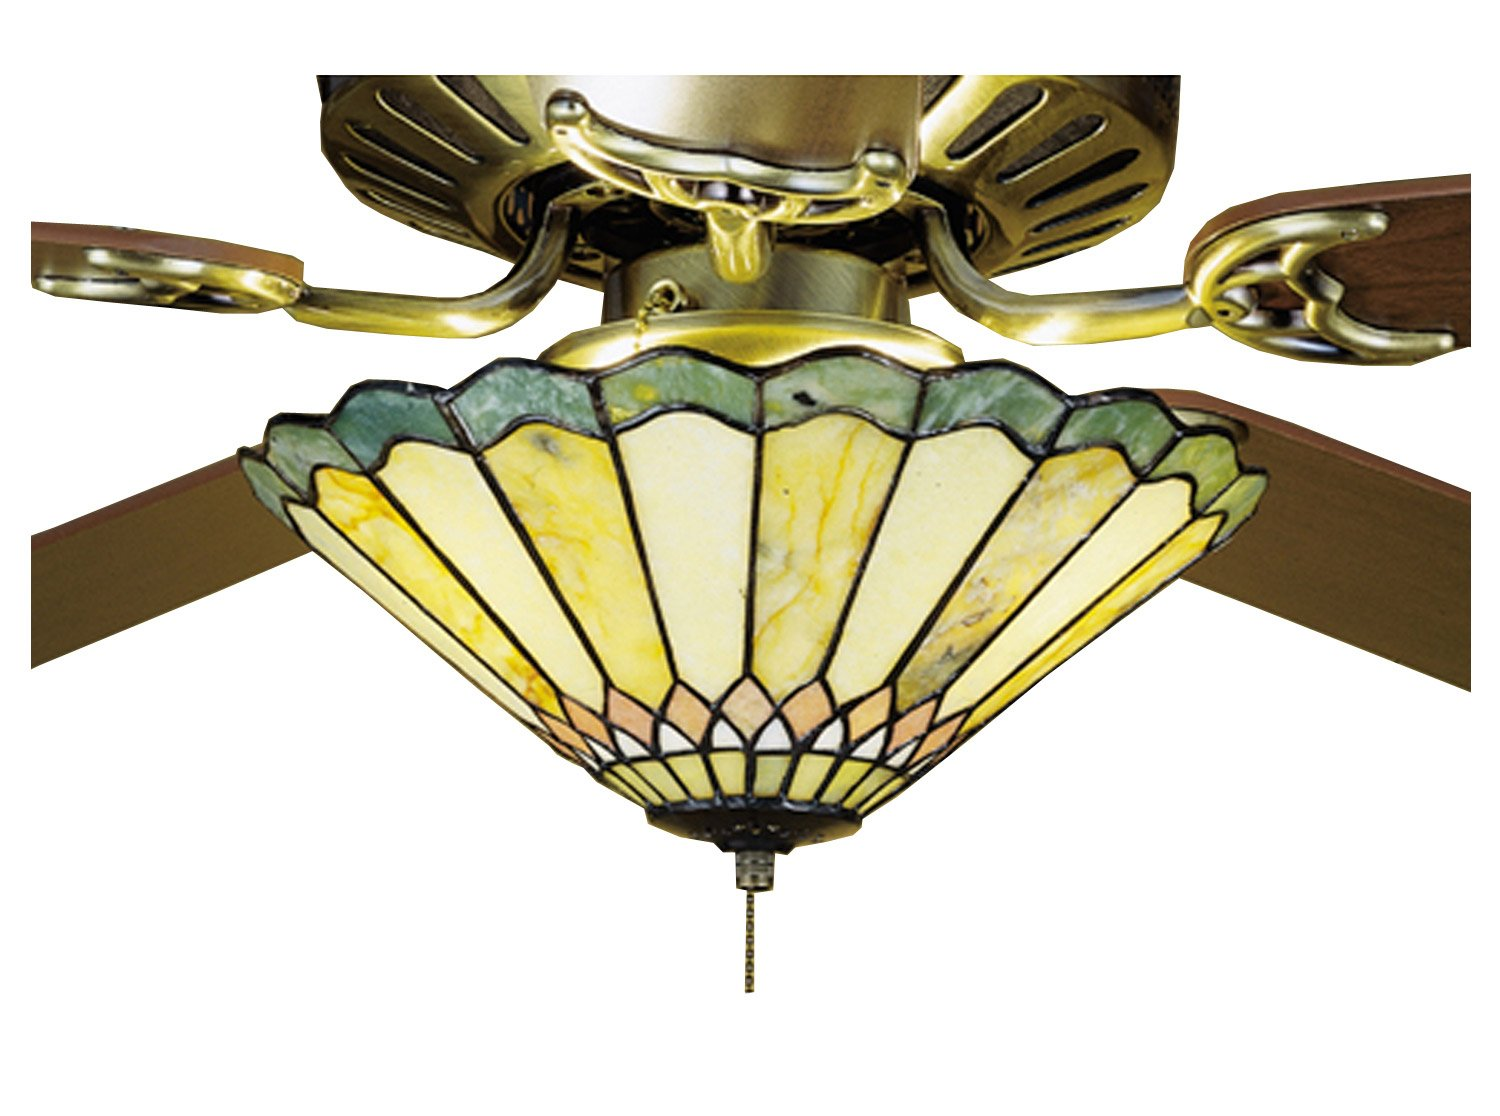 meyda tiffany jadestone carousel 3 light ceiling fan light ceiling fan light kits amazoncom - Meyda Tiffany